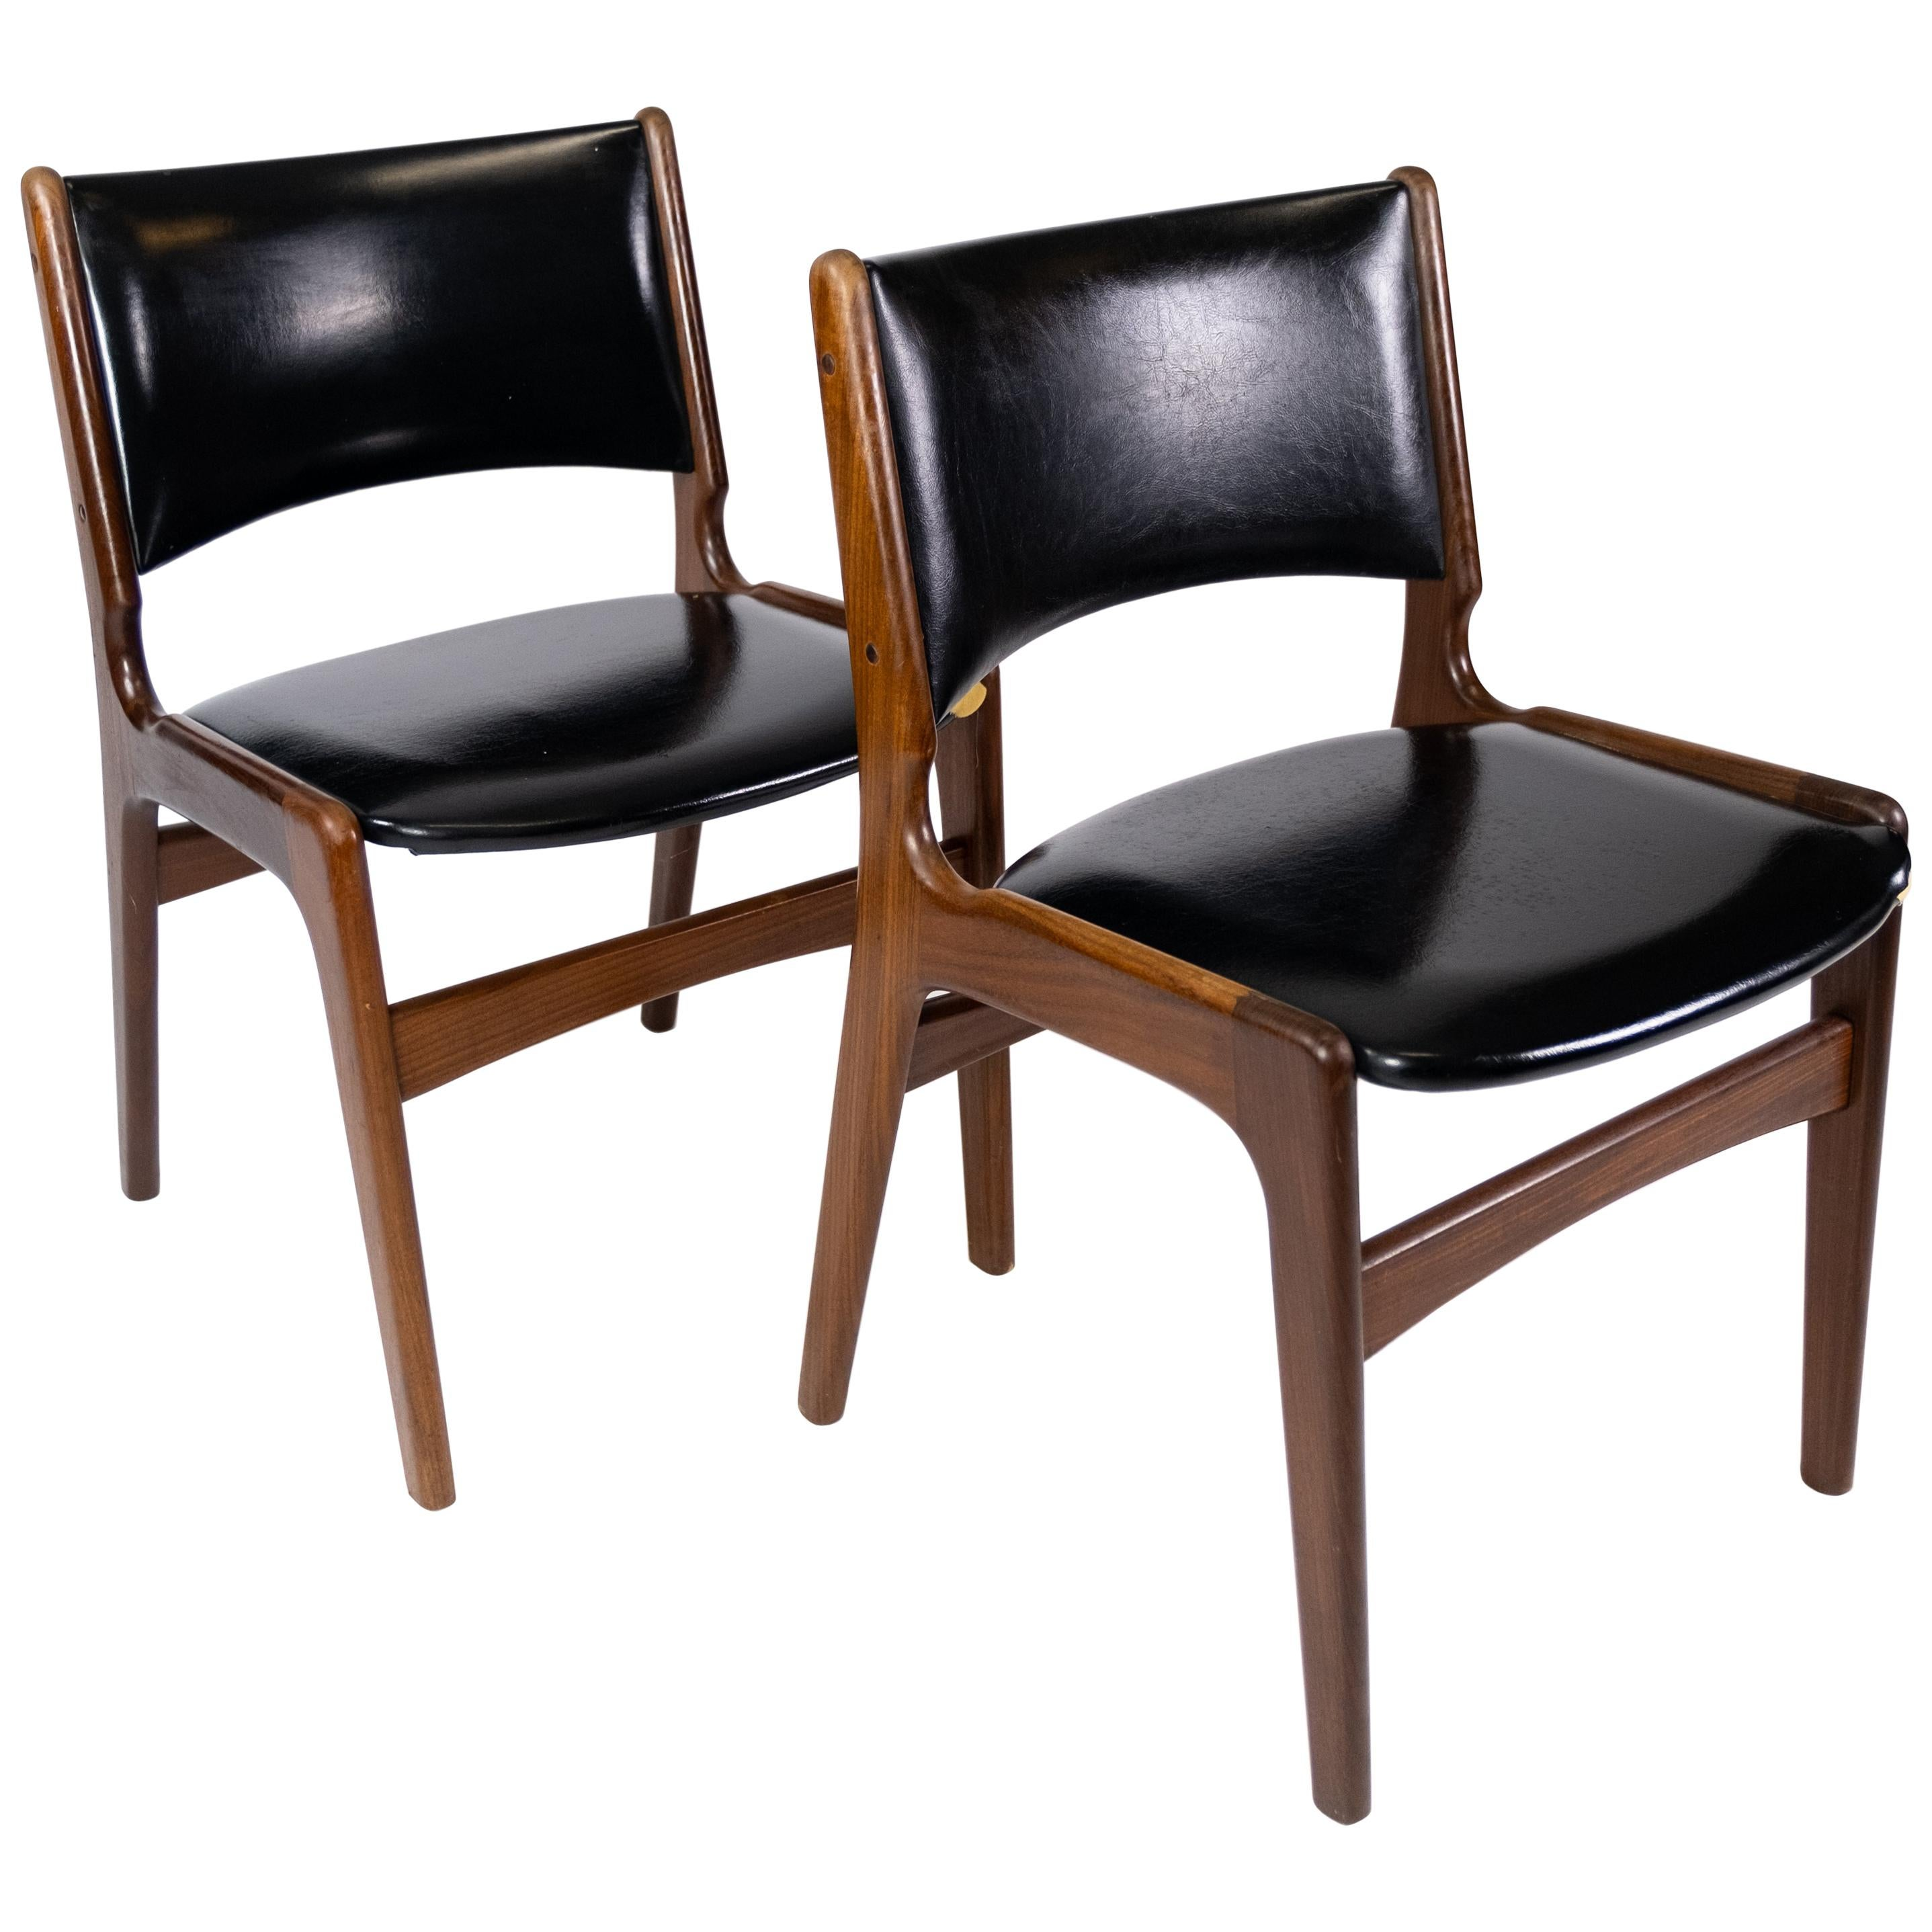 Set of Chairs in Teak and with Black Leather Designed by Erik Buch, 1960s